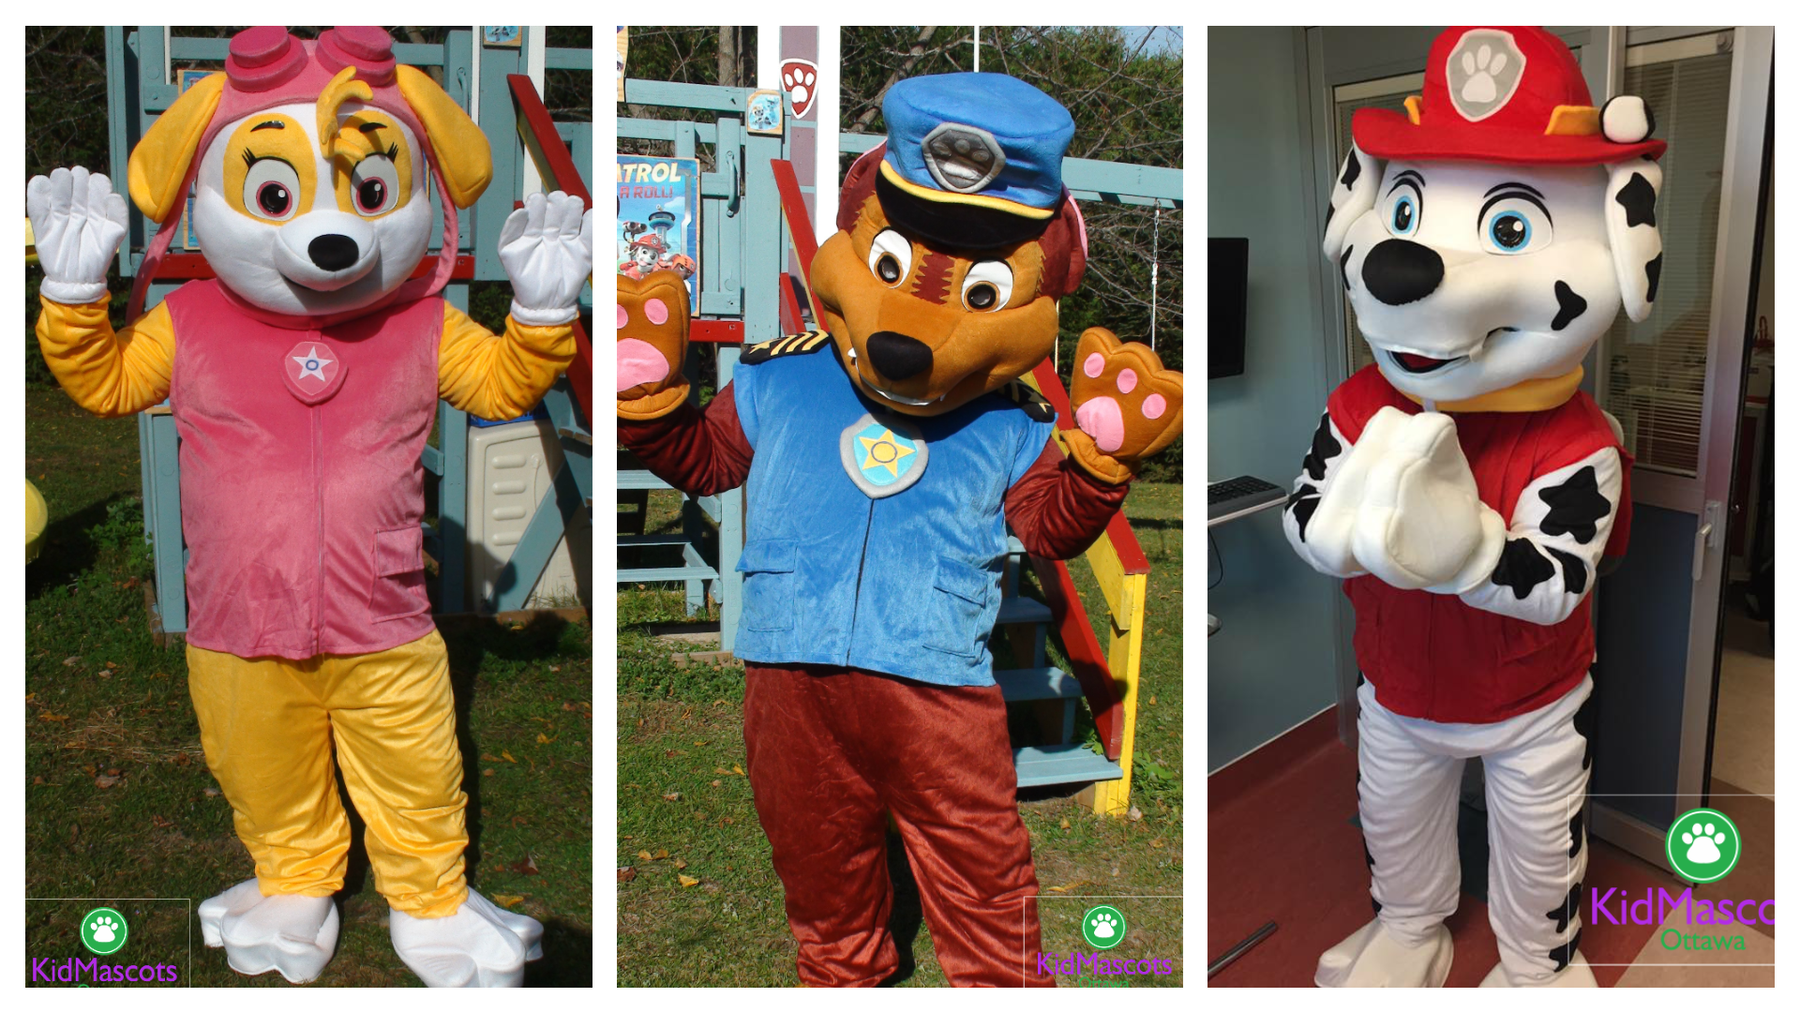 Kidmascots meet greet party passport to complete by taking part in the numerous activities and games available either before andor after their designated meet greet time kristyandbryce Images